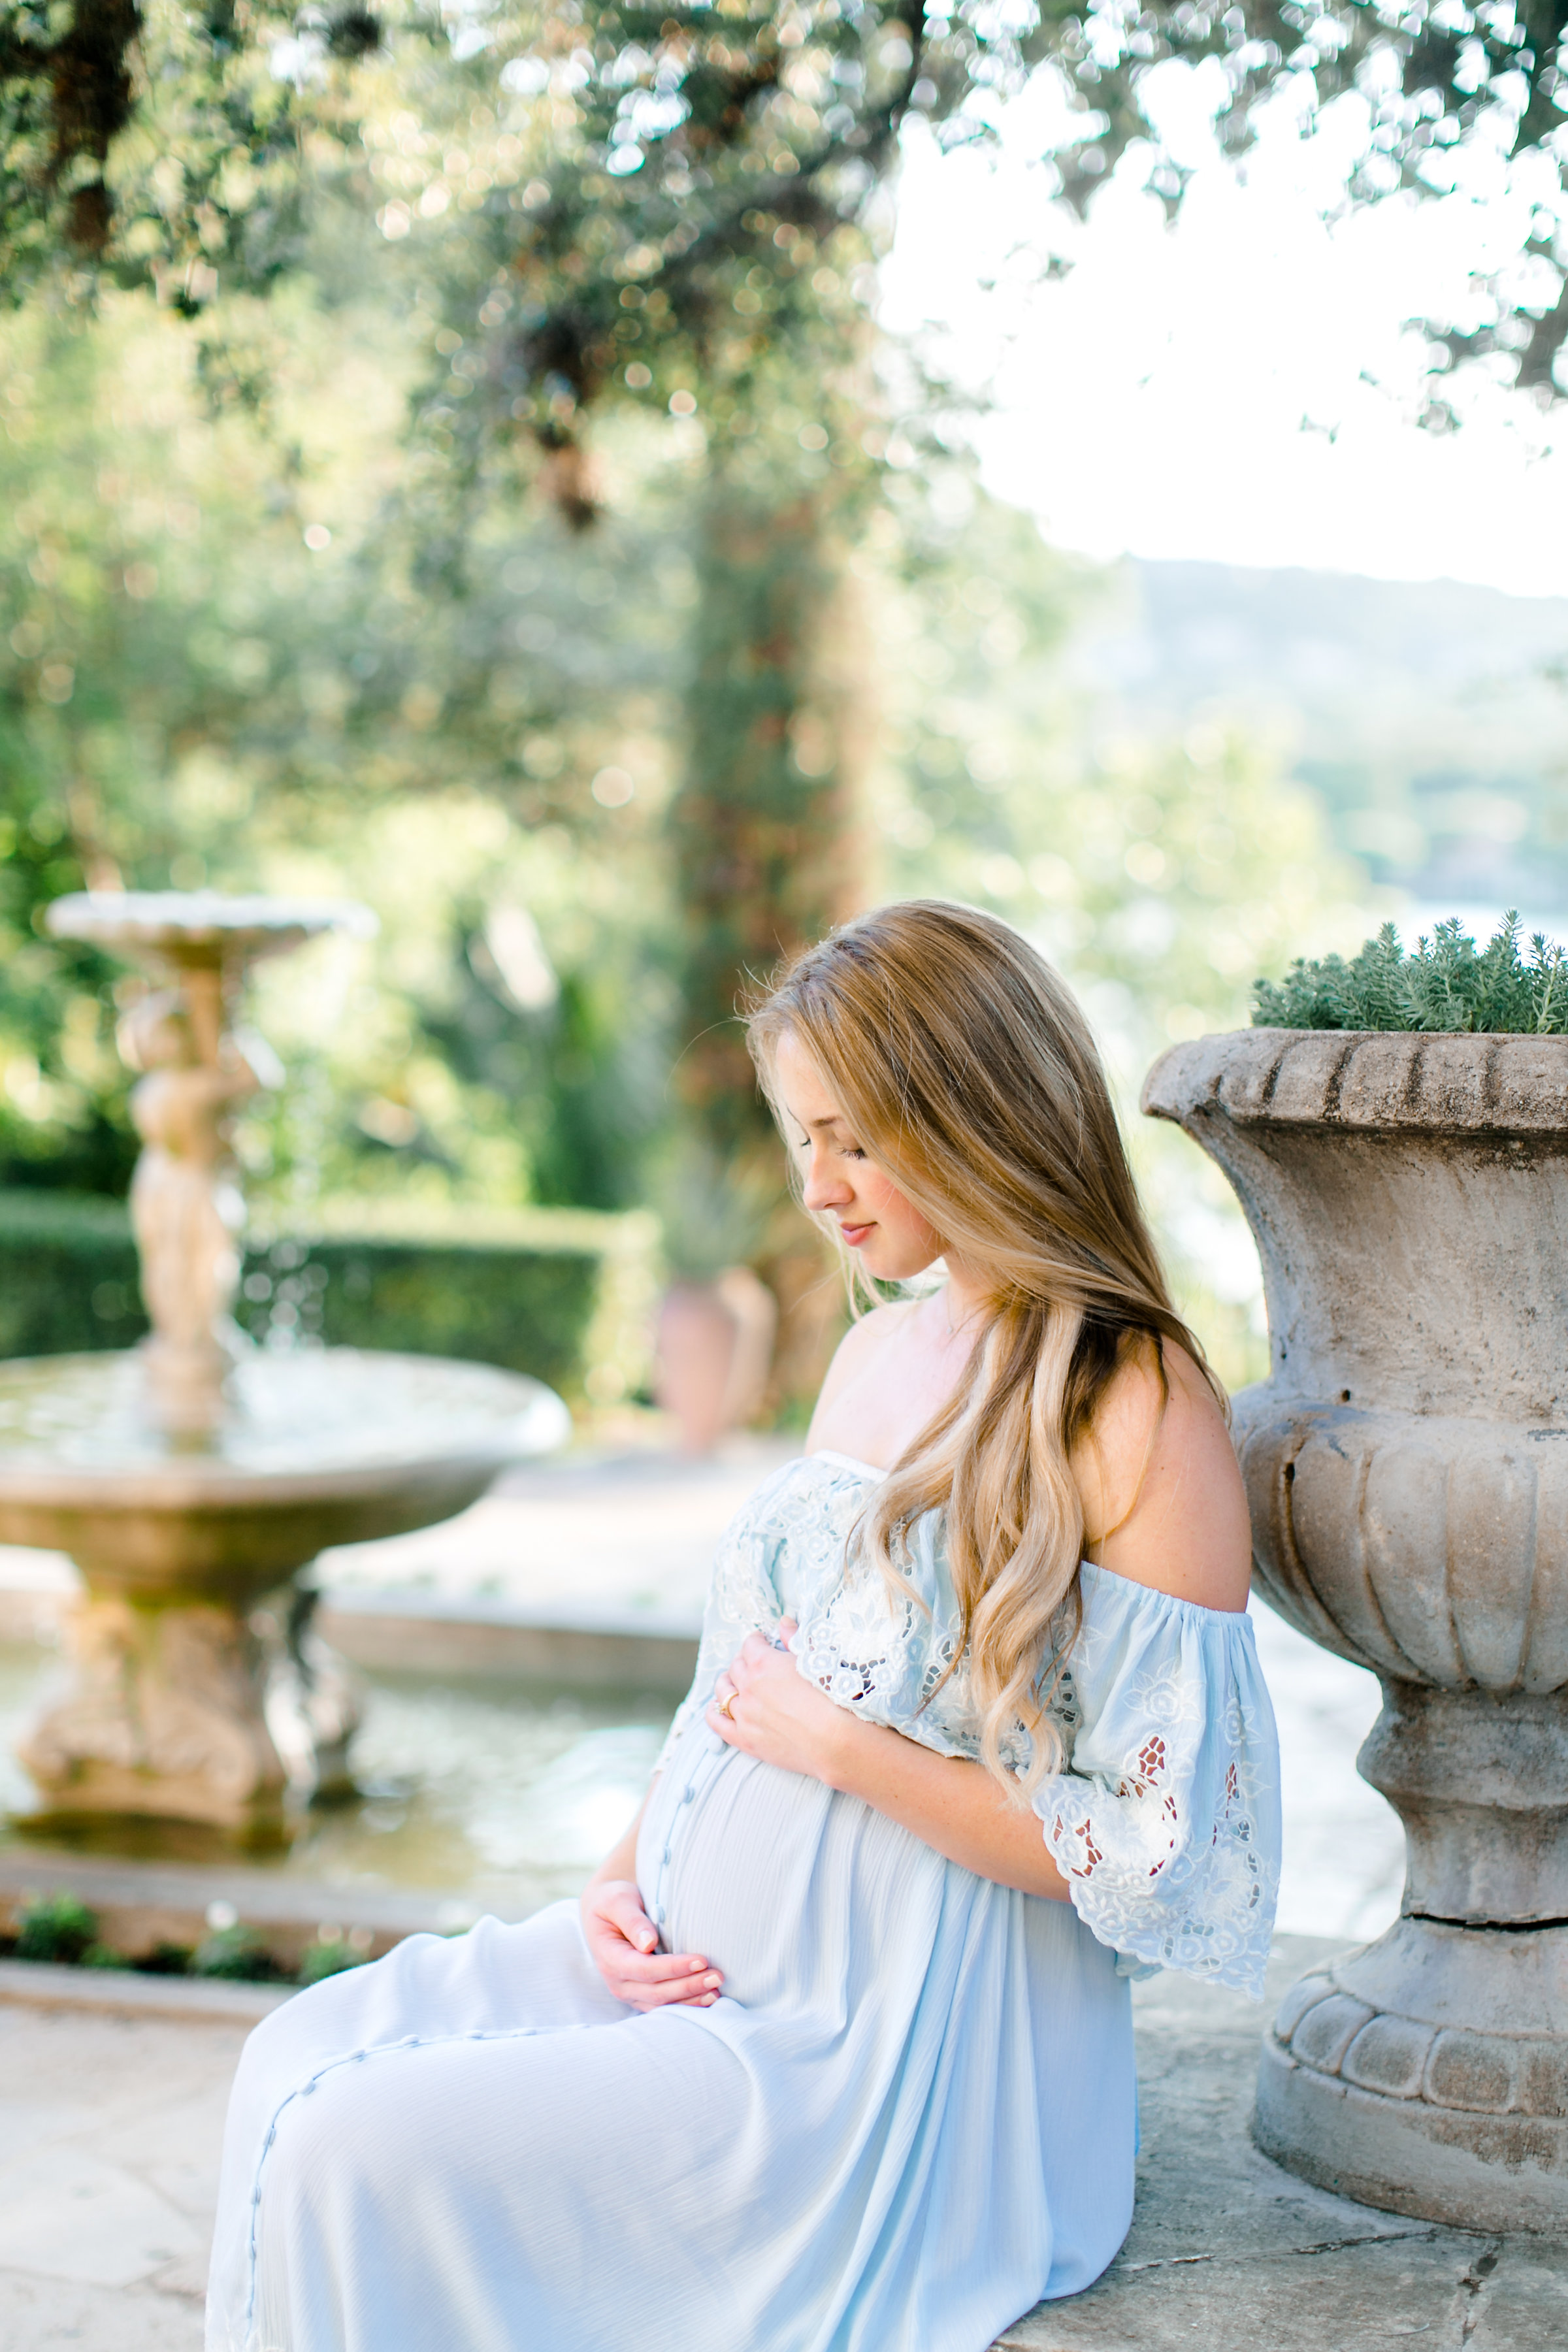 Austin-Maternity-Photographer-Laguna-Gloria-15.jpg